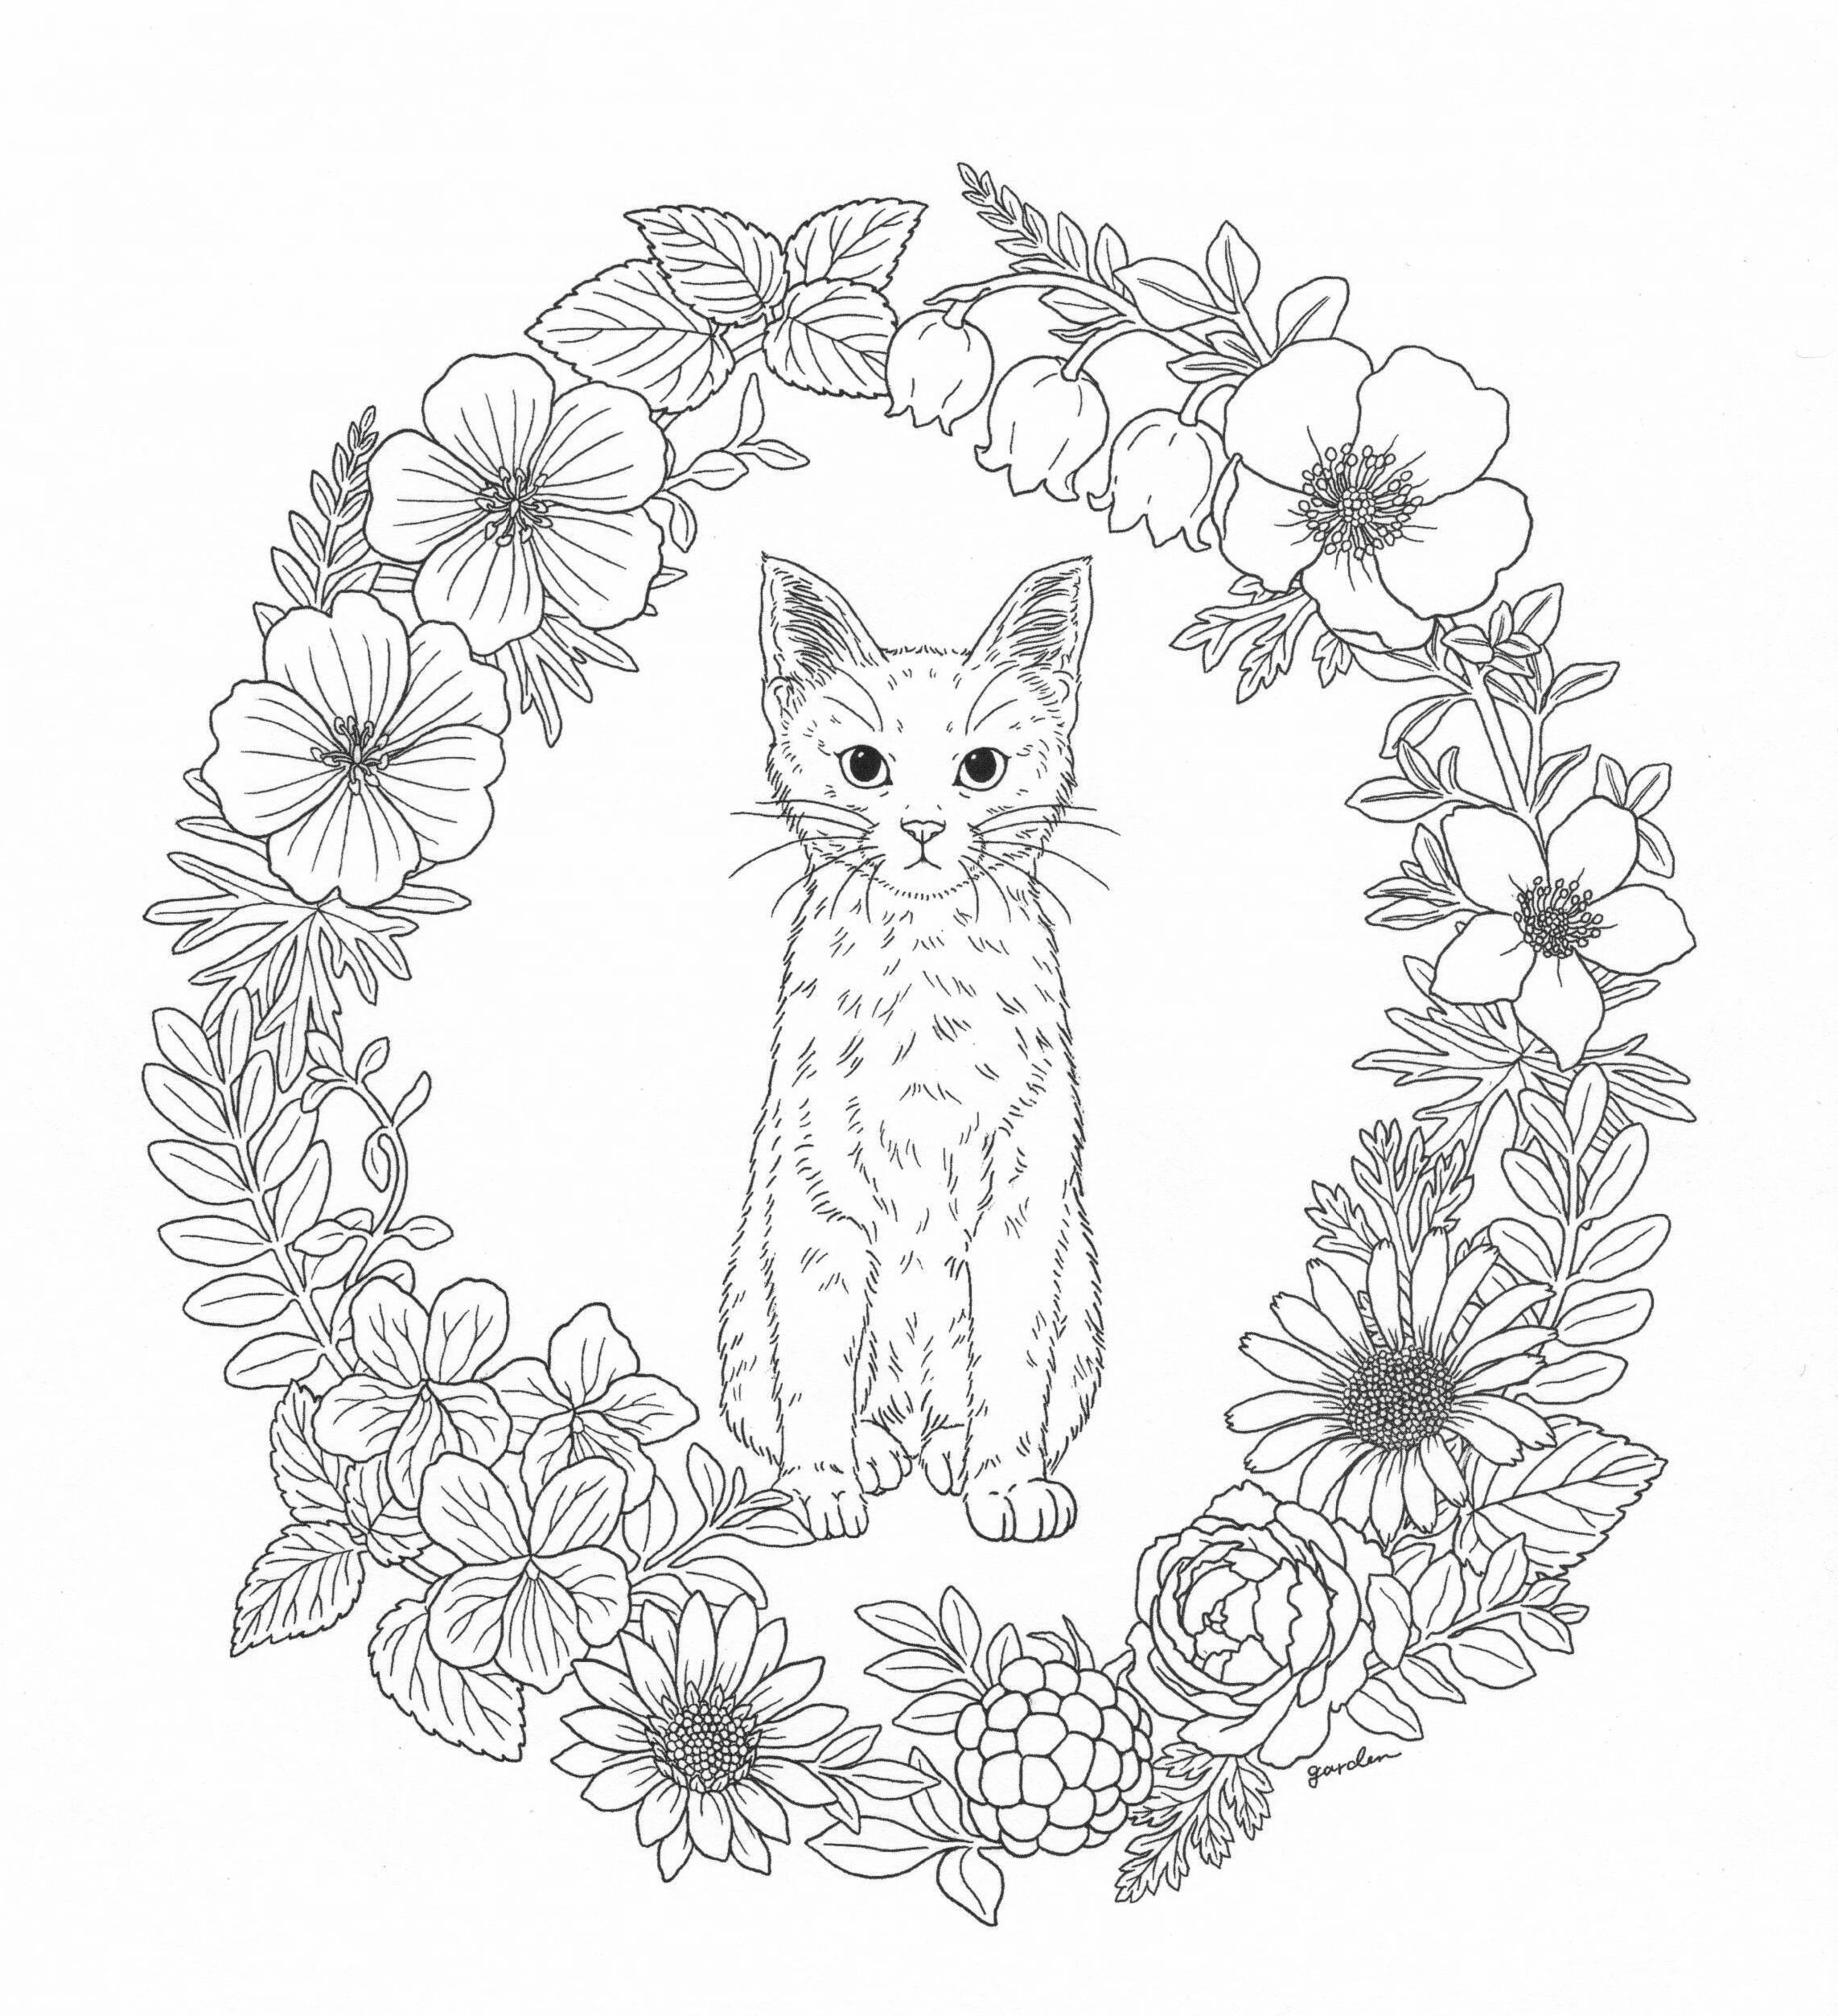 10 Best Of Coloring Page Cat Unicorn Coloring Pages Mandala Coloring Pages Butterfly Coloring Page